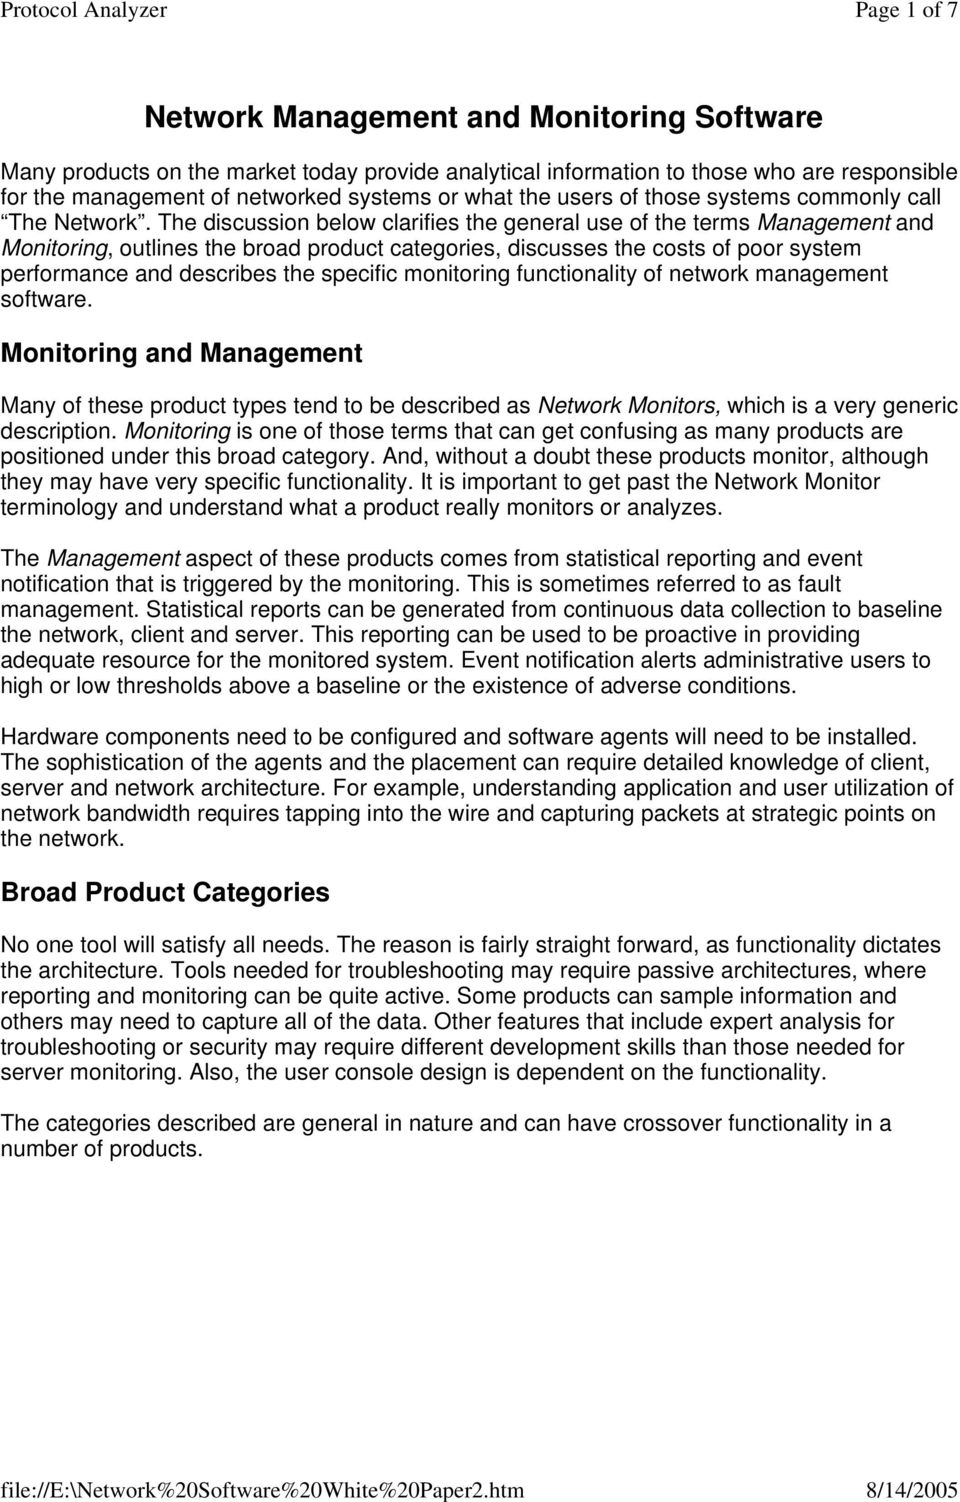 The discussion below clarifies the general use of the terms Management and Monitoring, outlines the broad product categories, discusses the costs of poor system performance and describes the specific